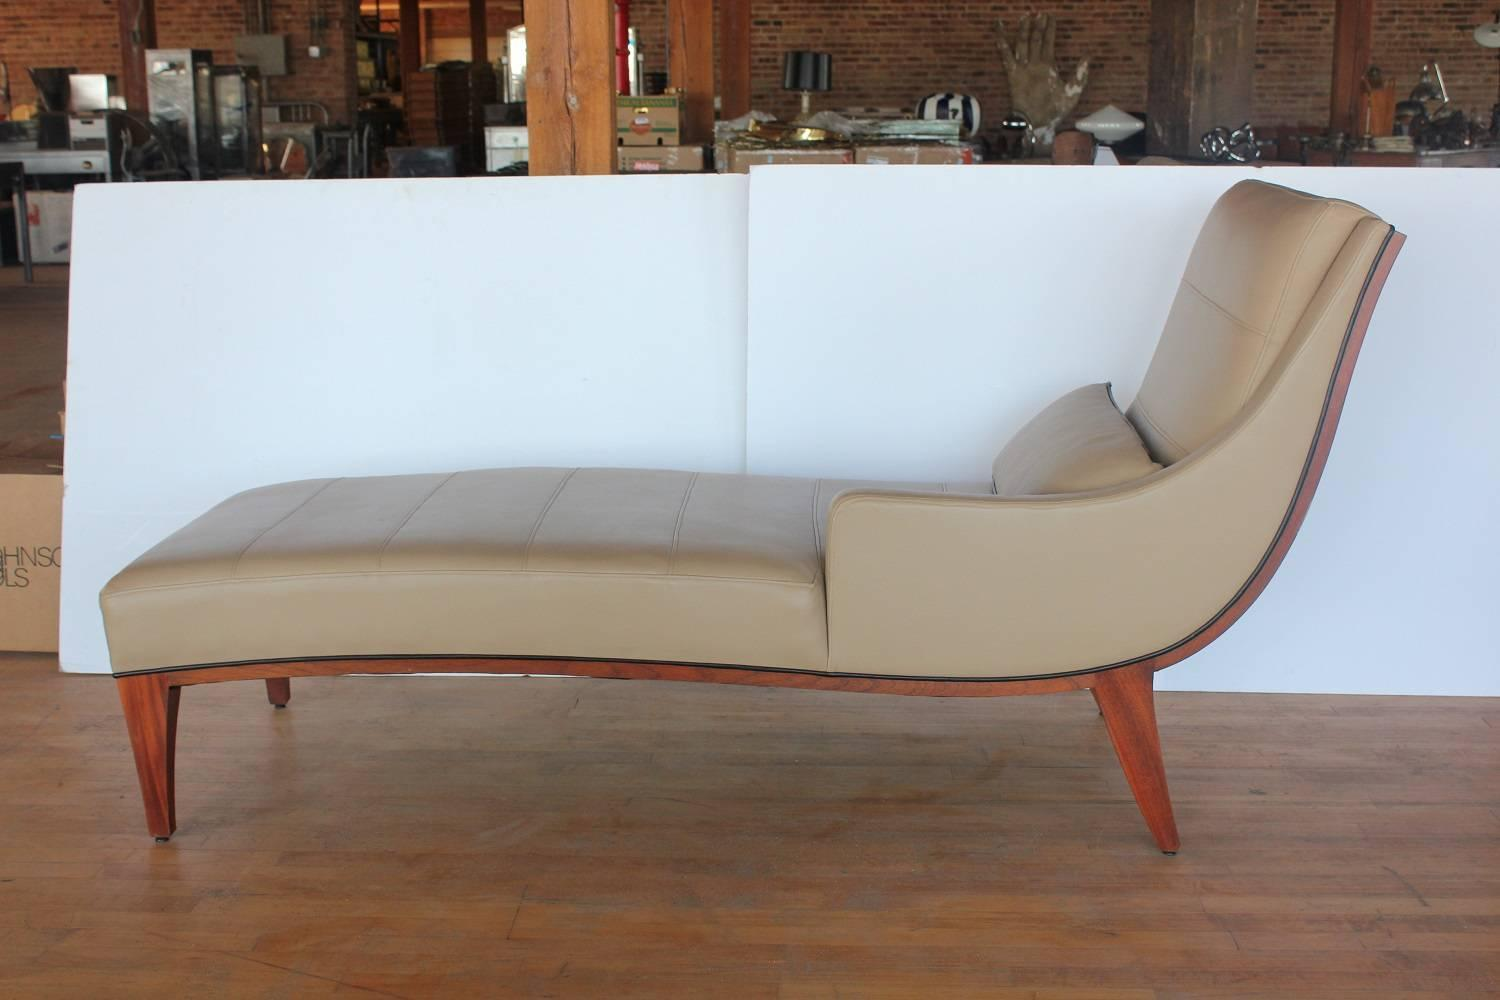 Modern leather chaise lounge by widdicomb for sale at 1stdibs for Chaise for sale